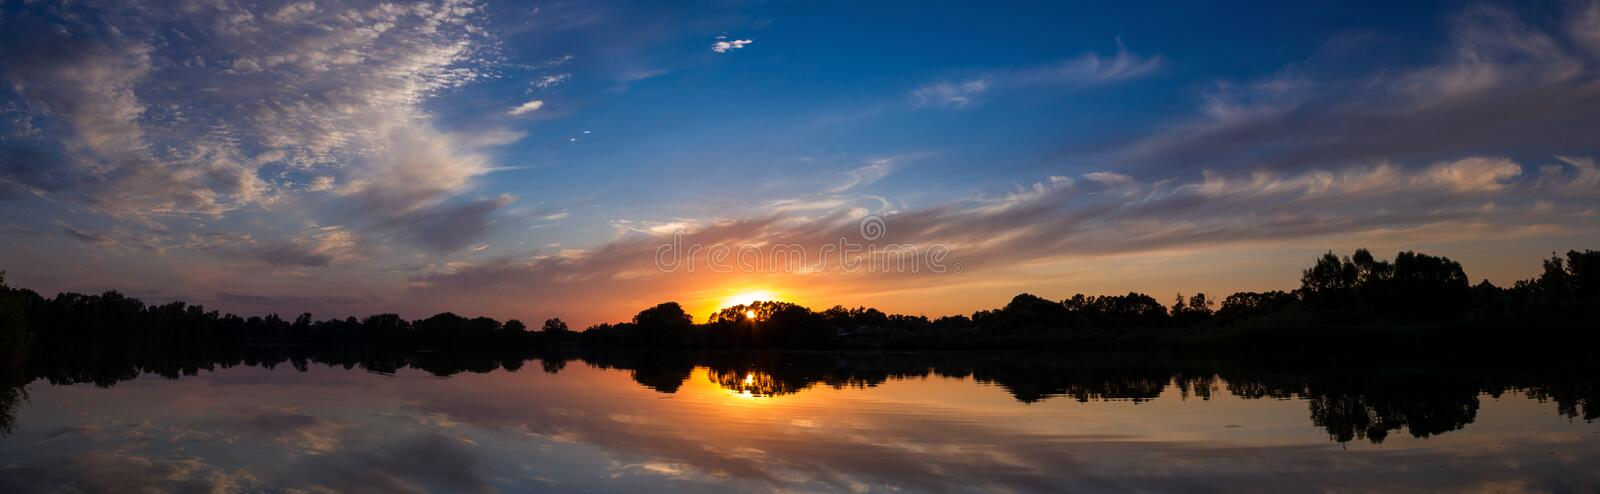 Sunset countryside stock photography